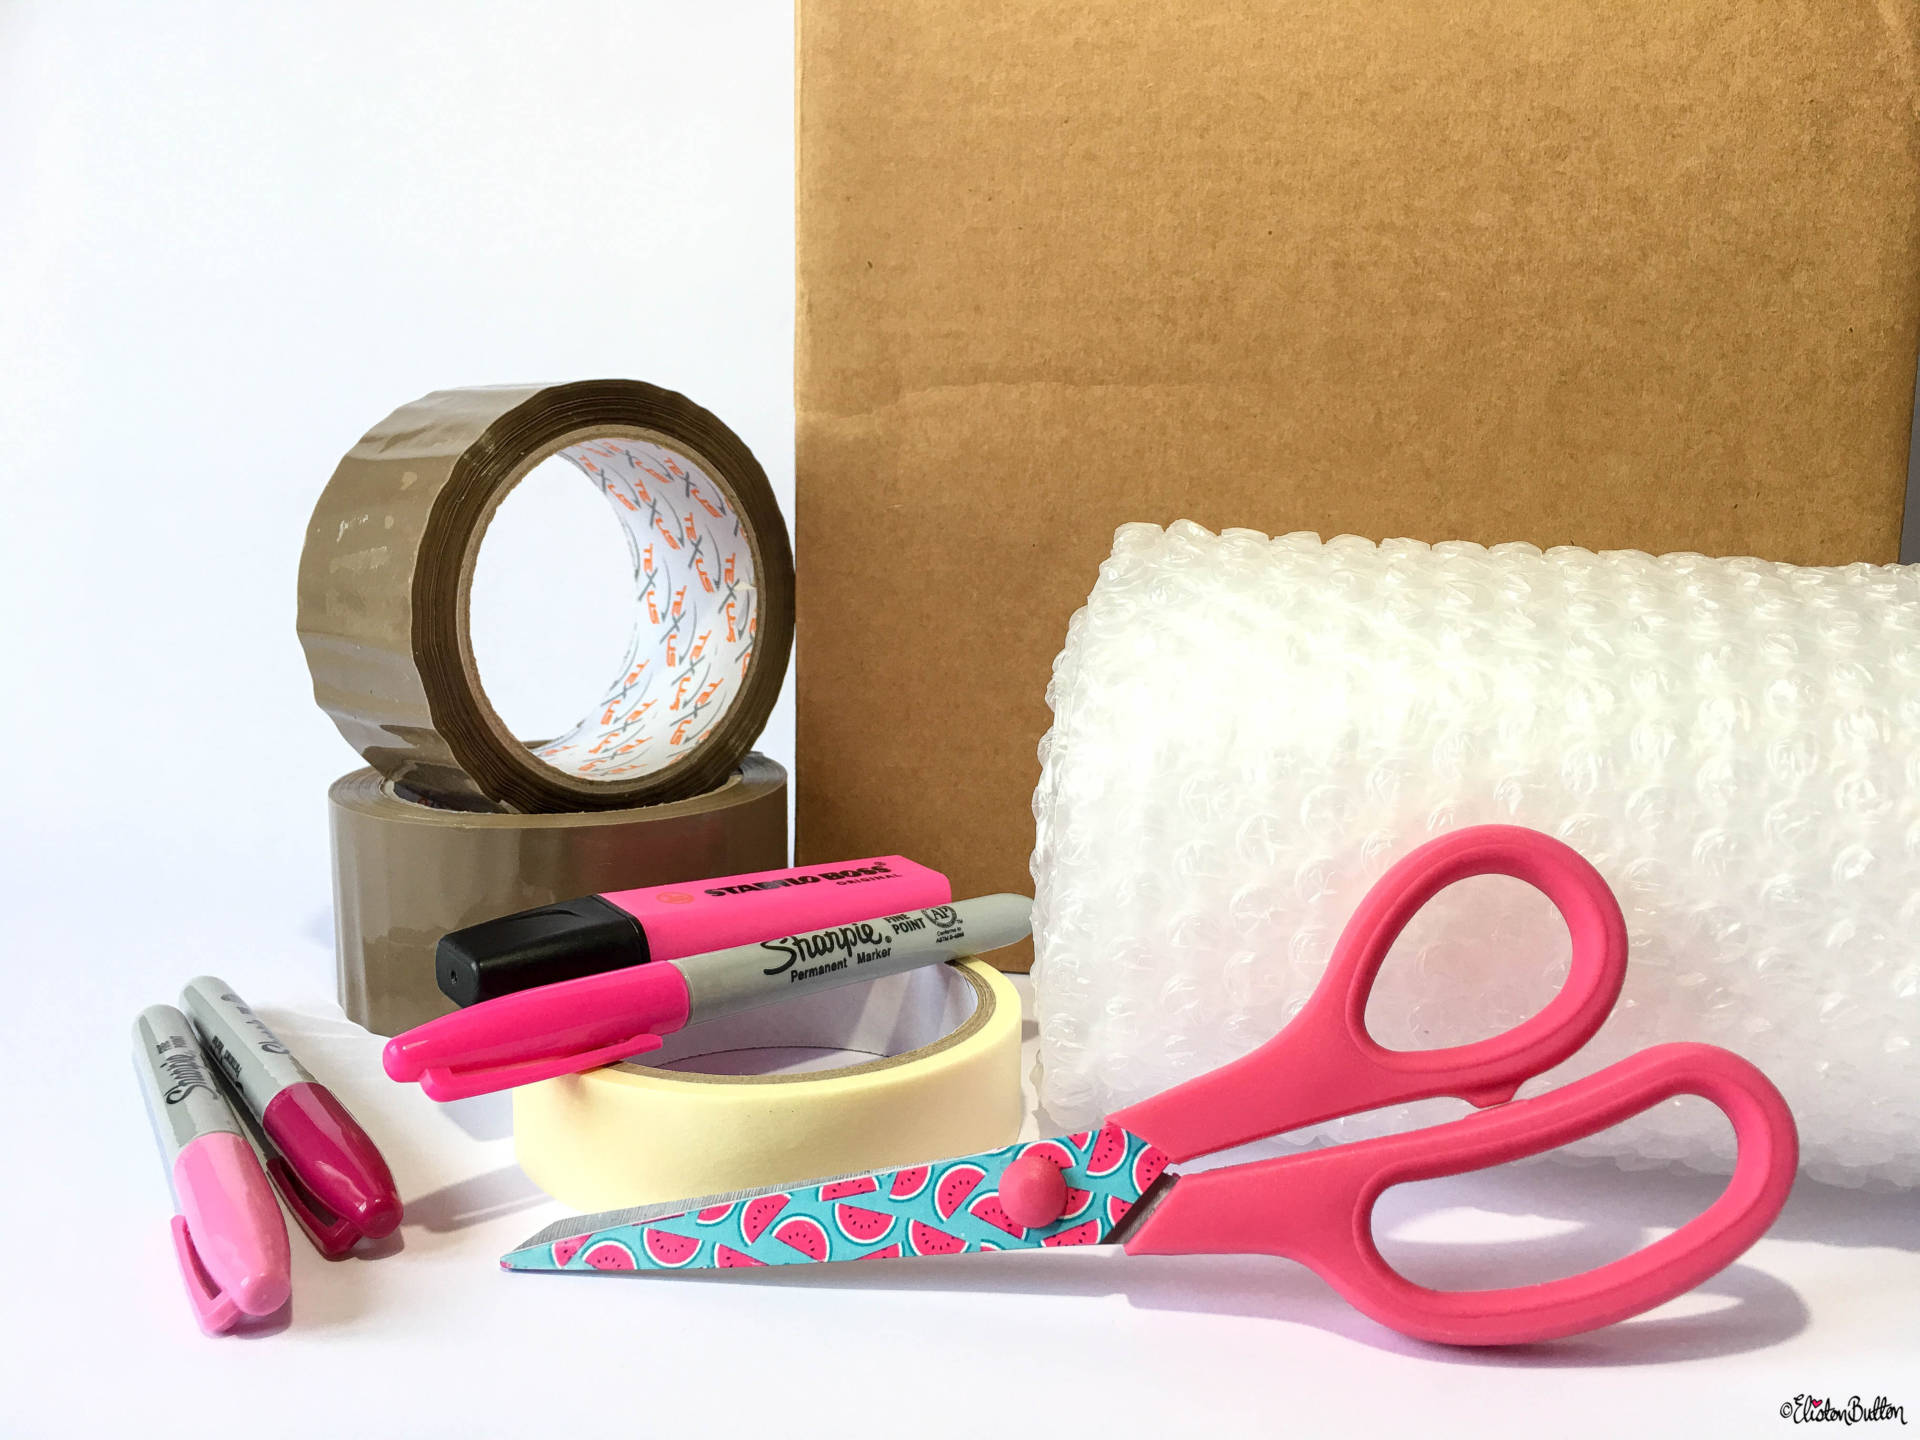 Moving House Essentials - Strong Boxes, Packing Tape, Bubble Wrap, Marker Pens, Scissors and Masking Tape - 10 Top Tips for...Moving House at www.elistonbutton.com - Eliston Button - That Crafty Kid – Art, Design, Craft & Adventure.